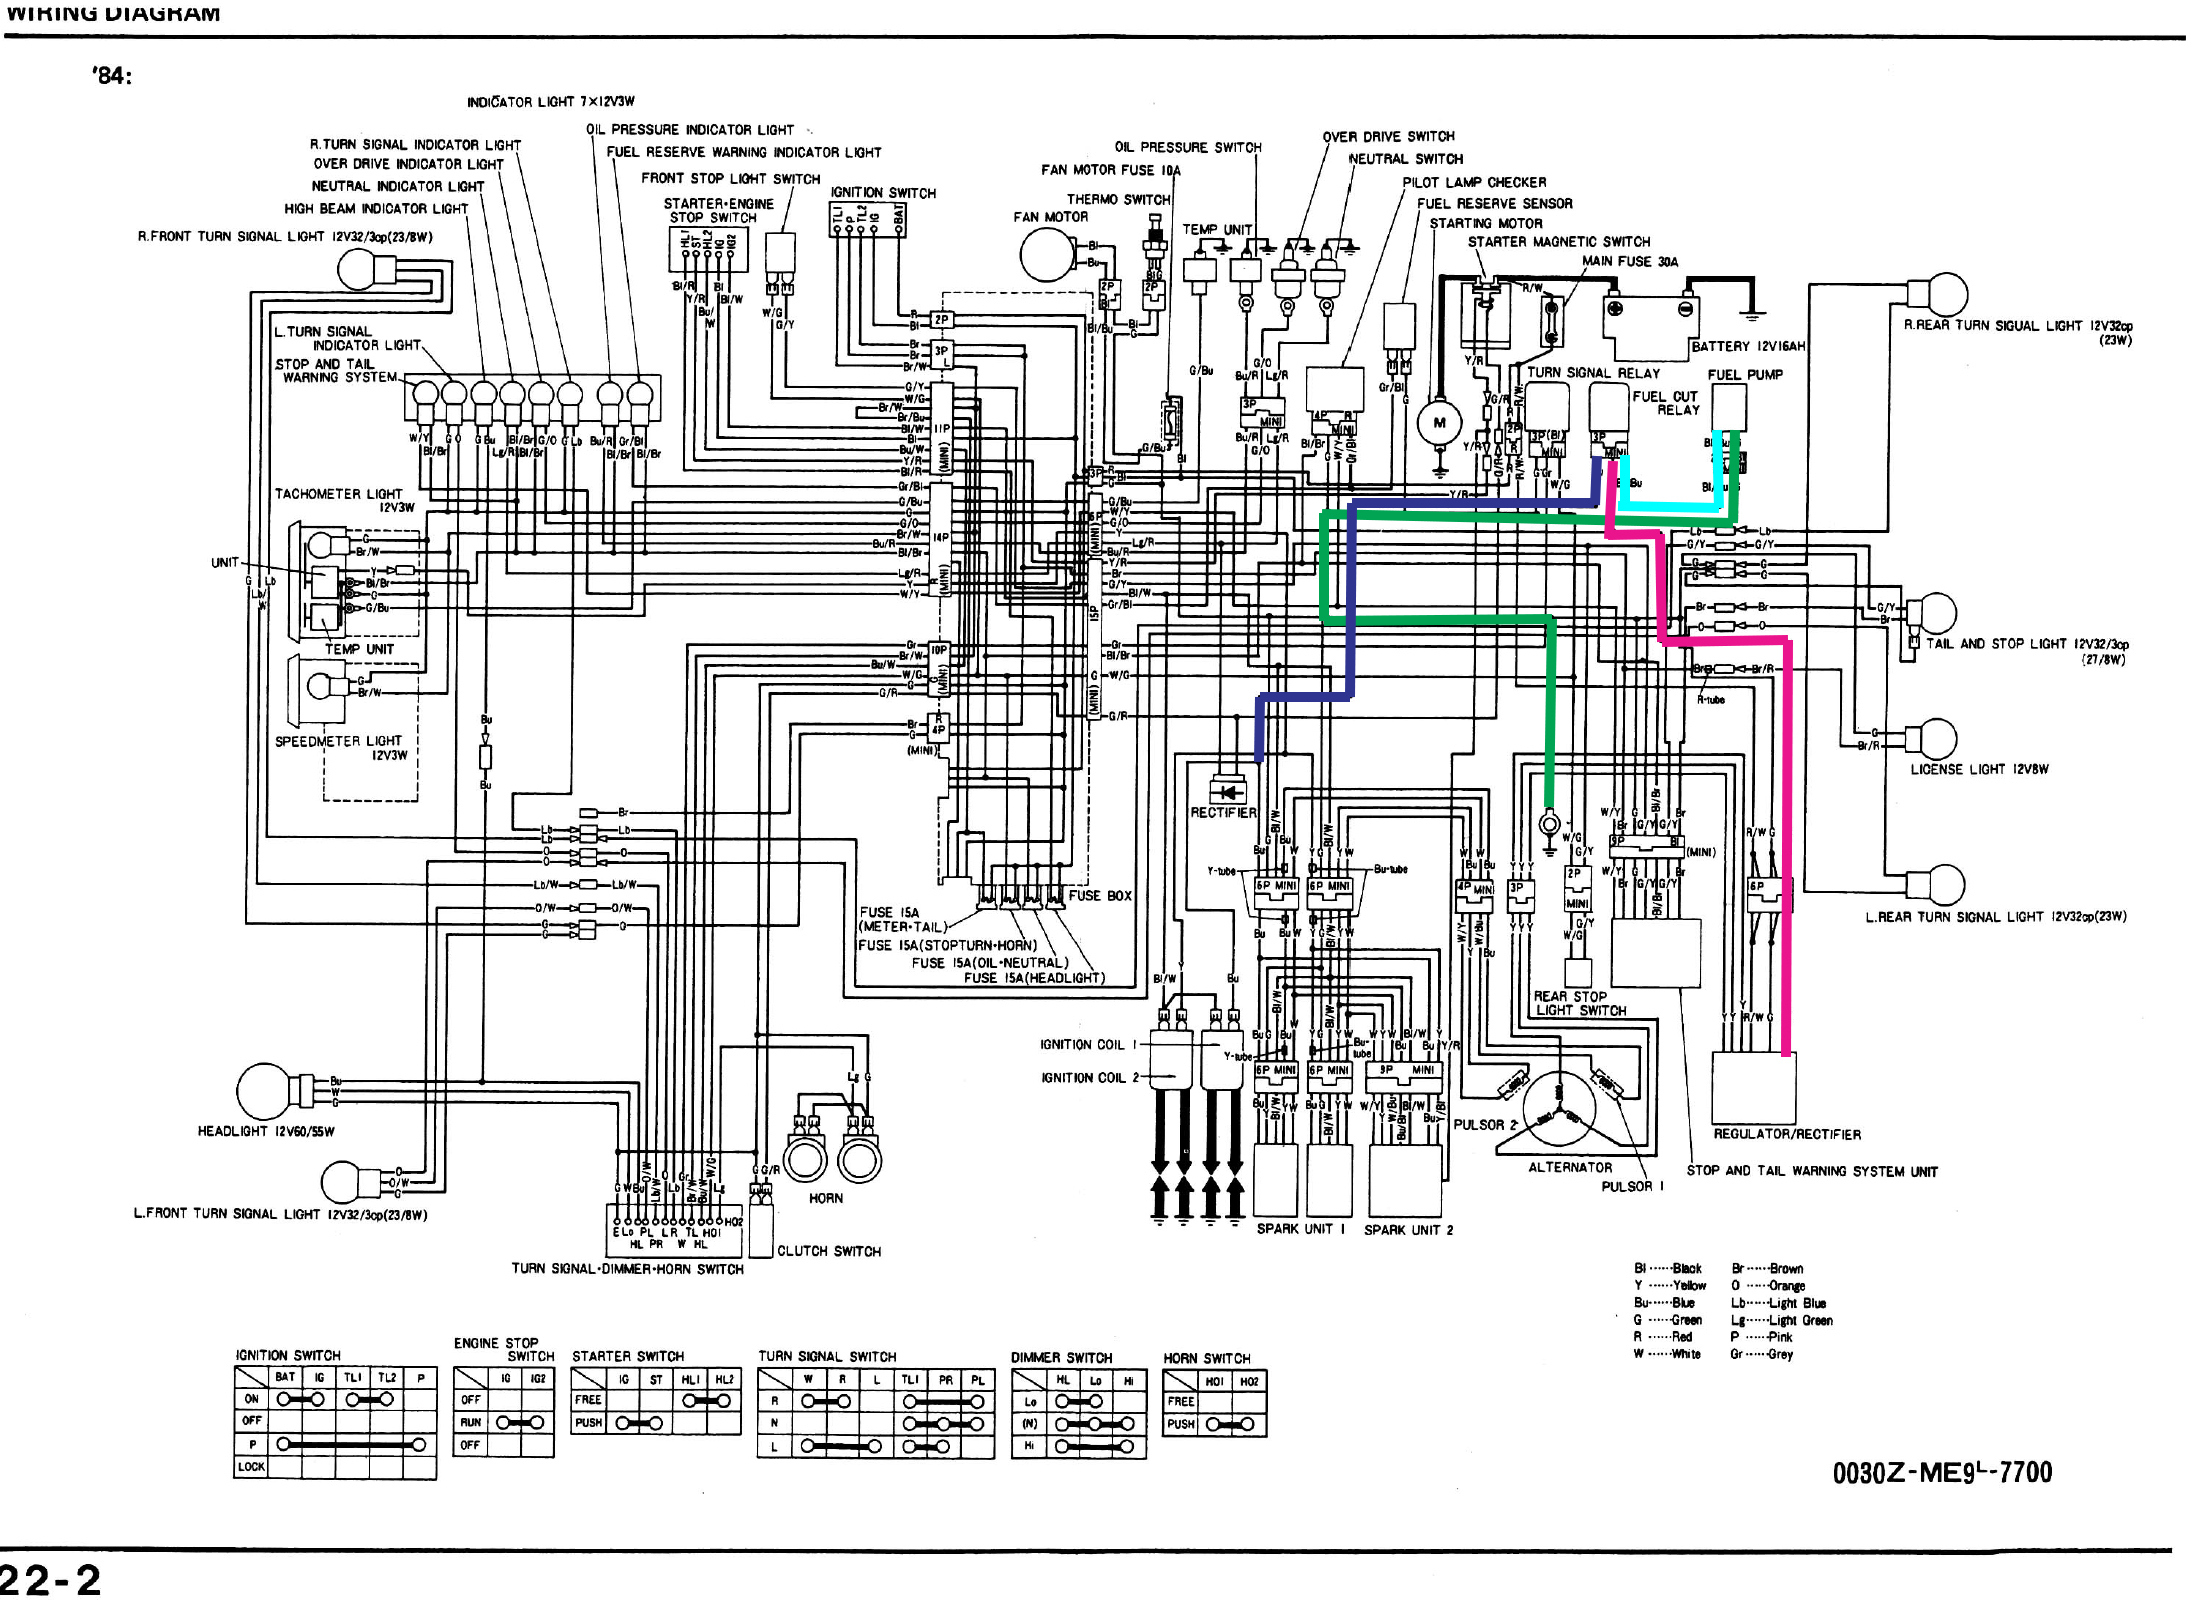 honda shadow vt700 wiring diagram wiring schematic diagramhonda 700 wiring diagram best wiring library 1983 honda shadow 750 wiring diagram 1984 honda shadow